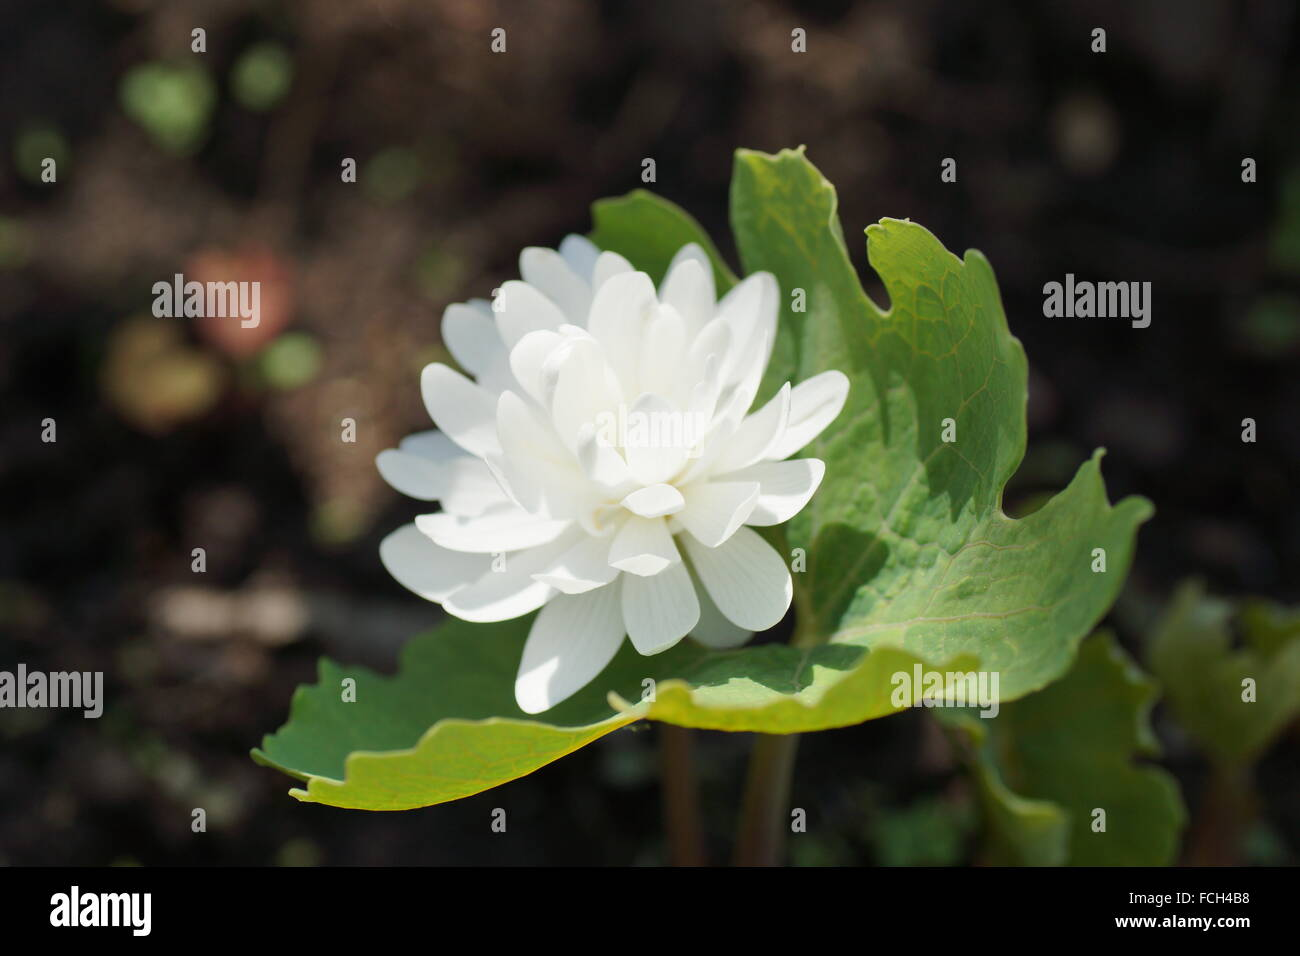 White flower. Sanguinaria canadensis Flore multiplex 'Plena',  bloodwort, redroot, red puccoon, pauson - Stock Image